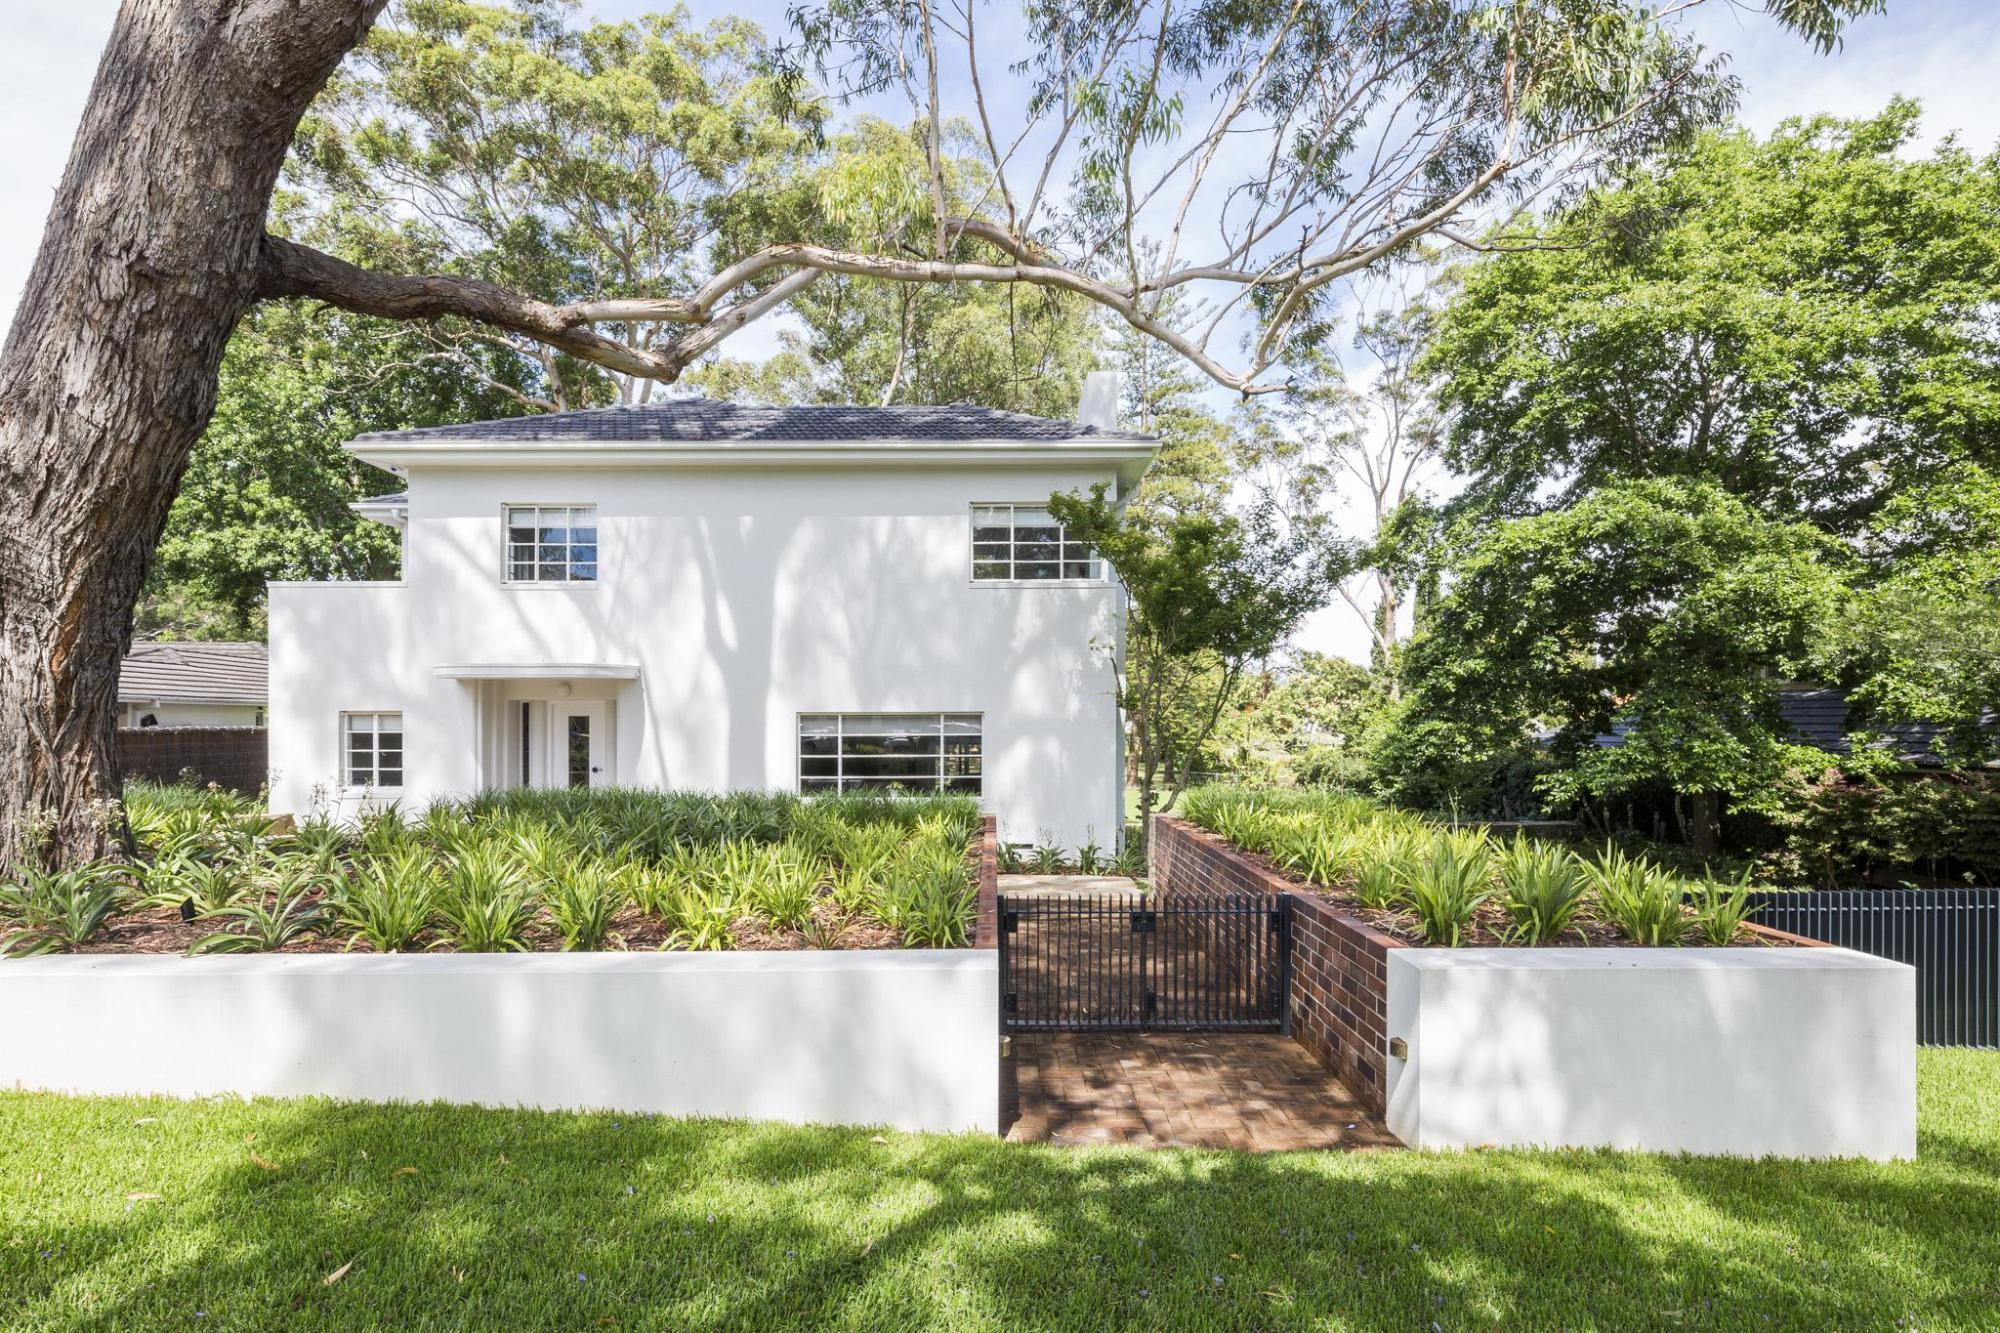 Amber Road Killara House - Photographed by Tom Ferguson - Sydney, NSW, Australia - Image 1